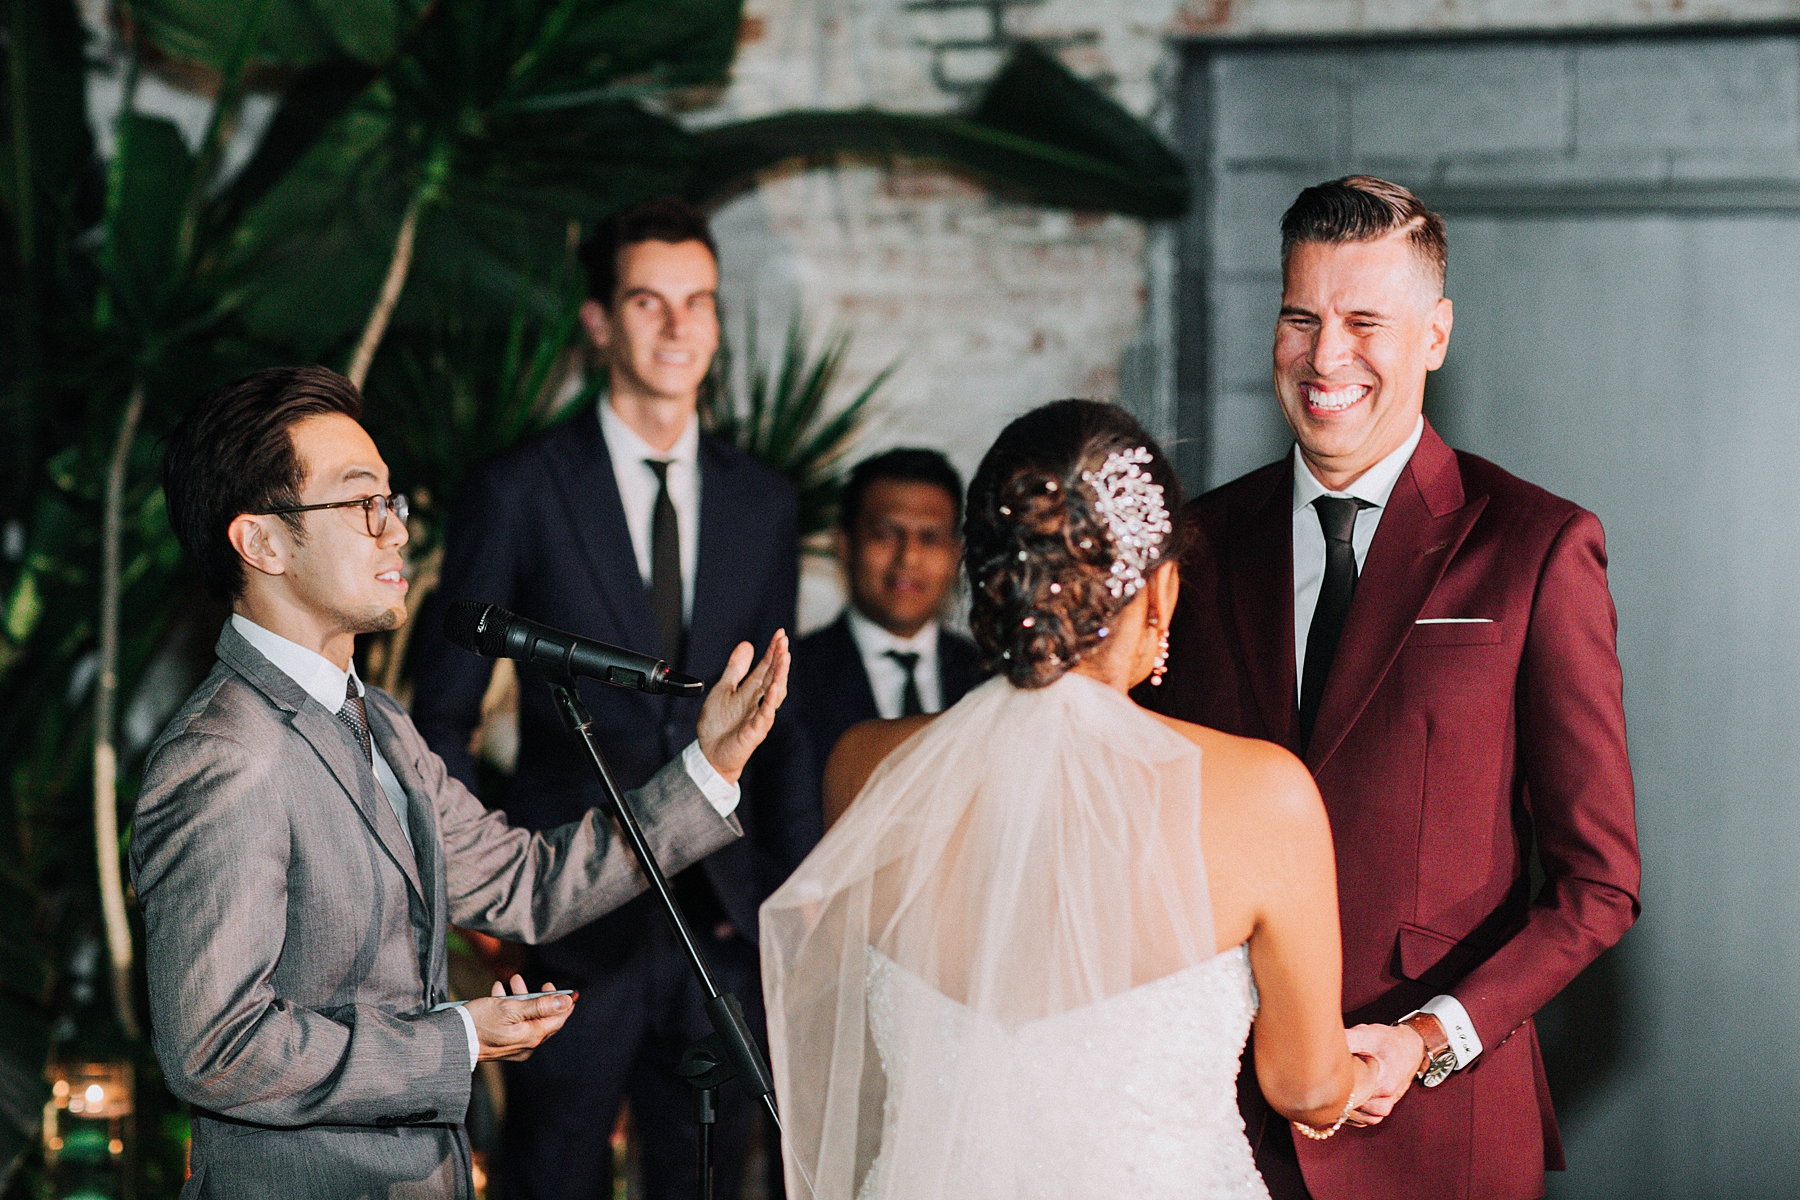 Bride and Groom at the Alter, Millwick Wedding Downtown Los Angeles